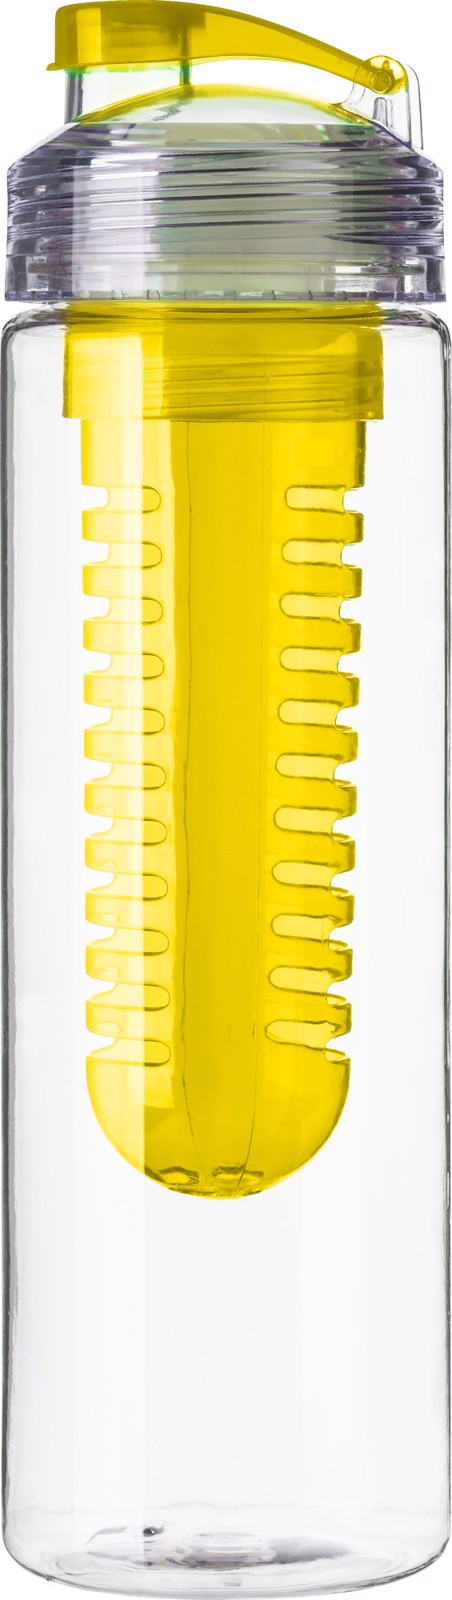 Tritan and PS bottle - Yellow